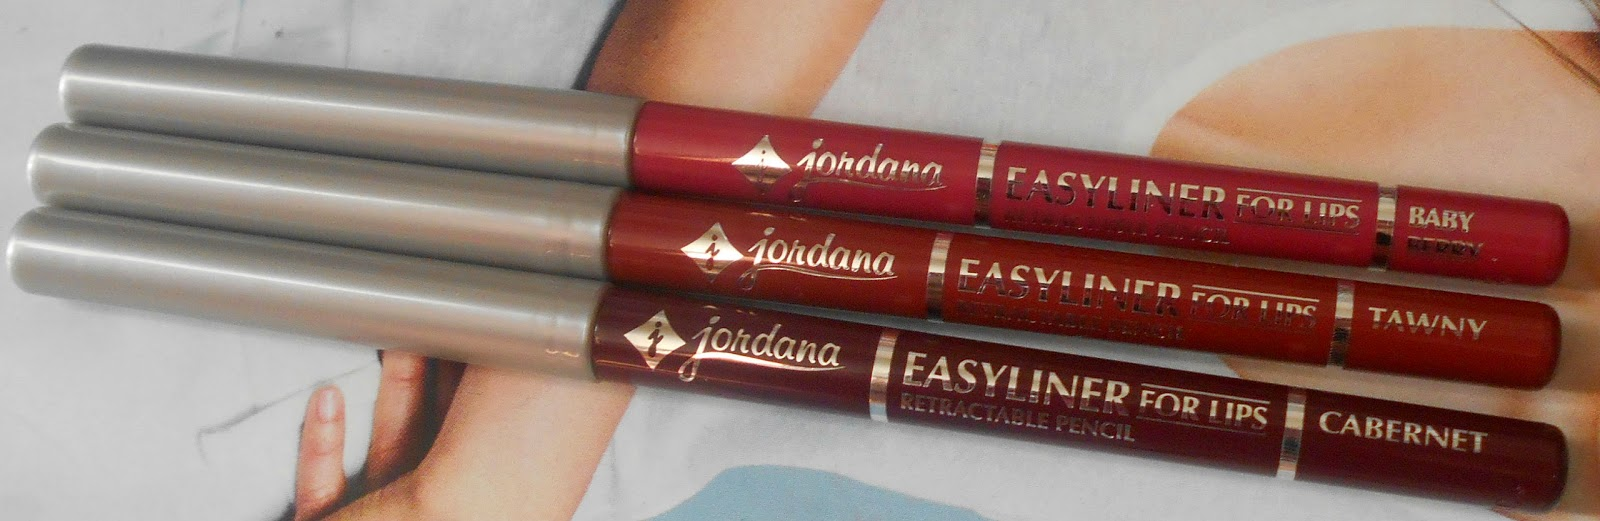 Jordana Cosmetics Easyliners For Lips